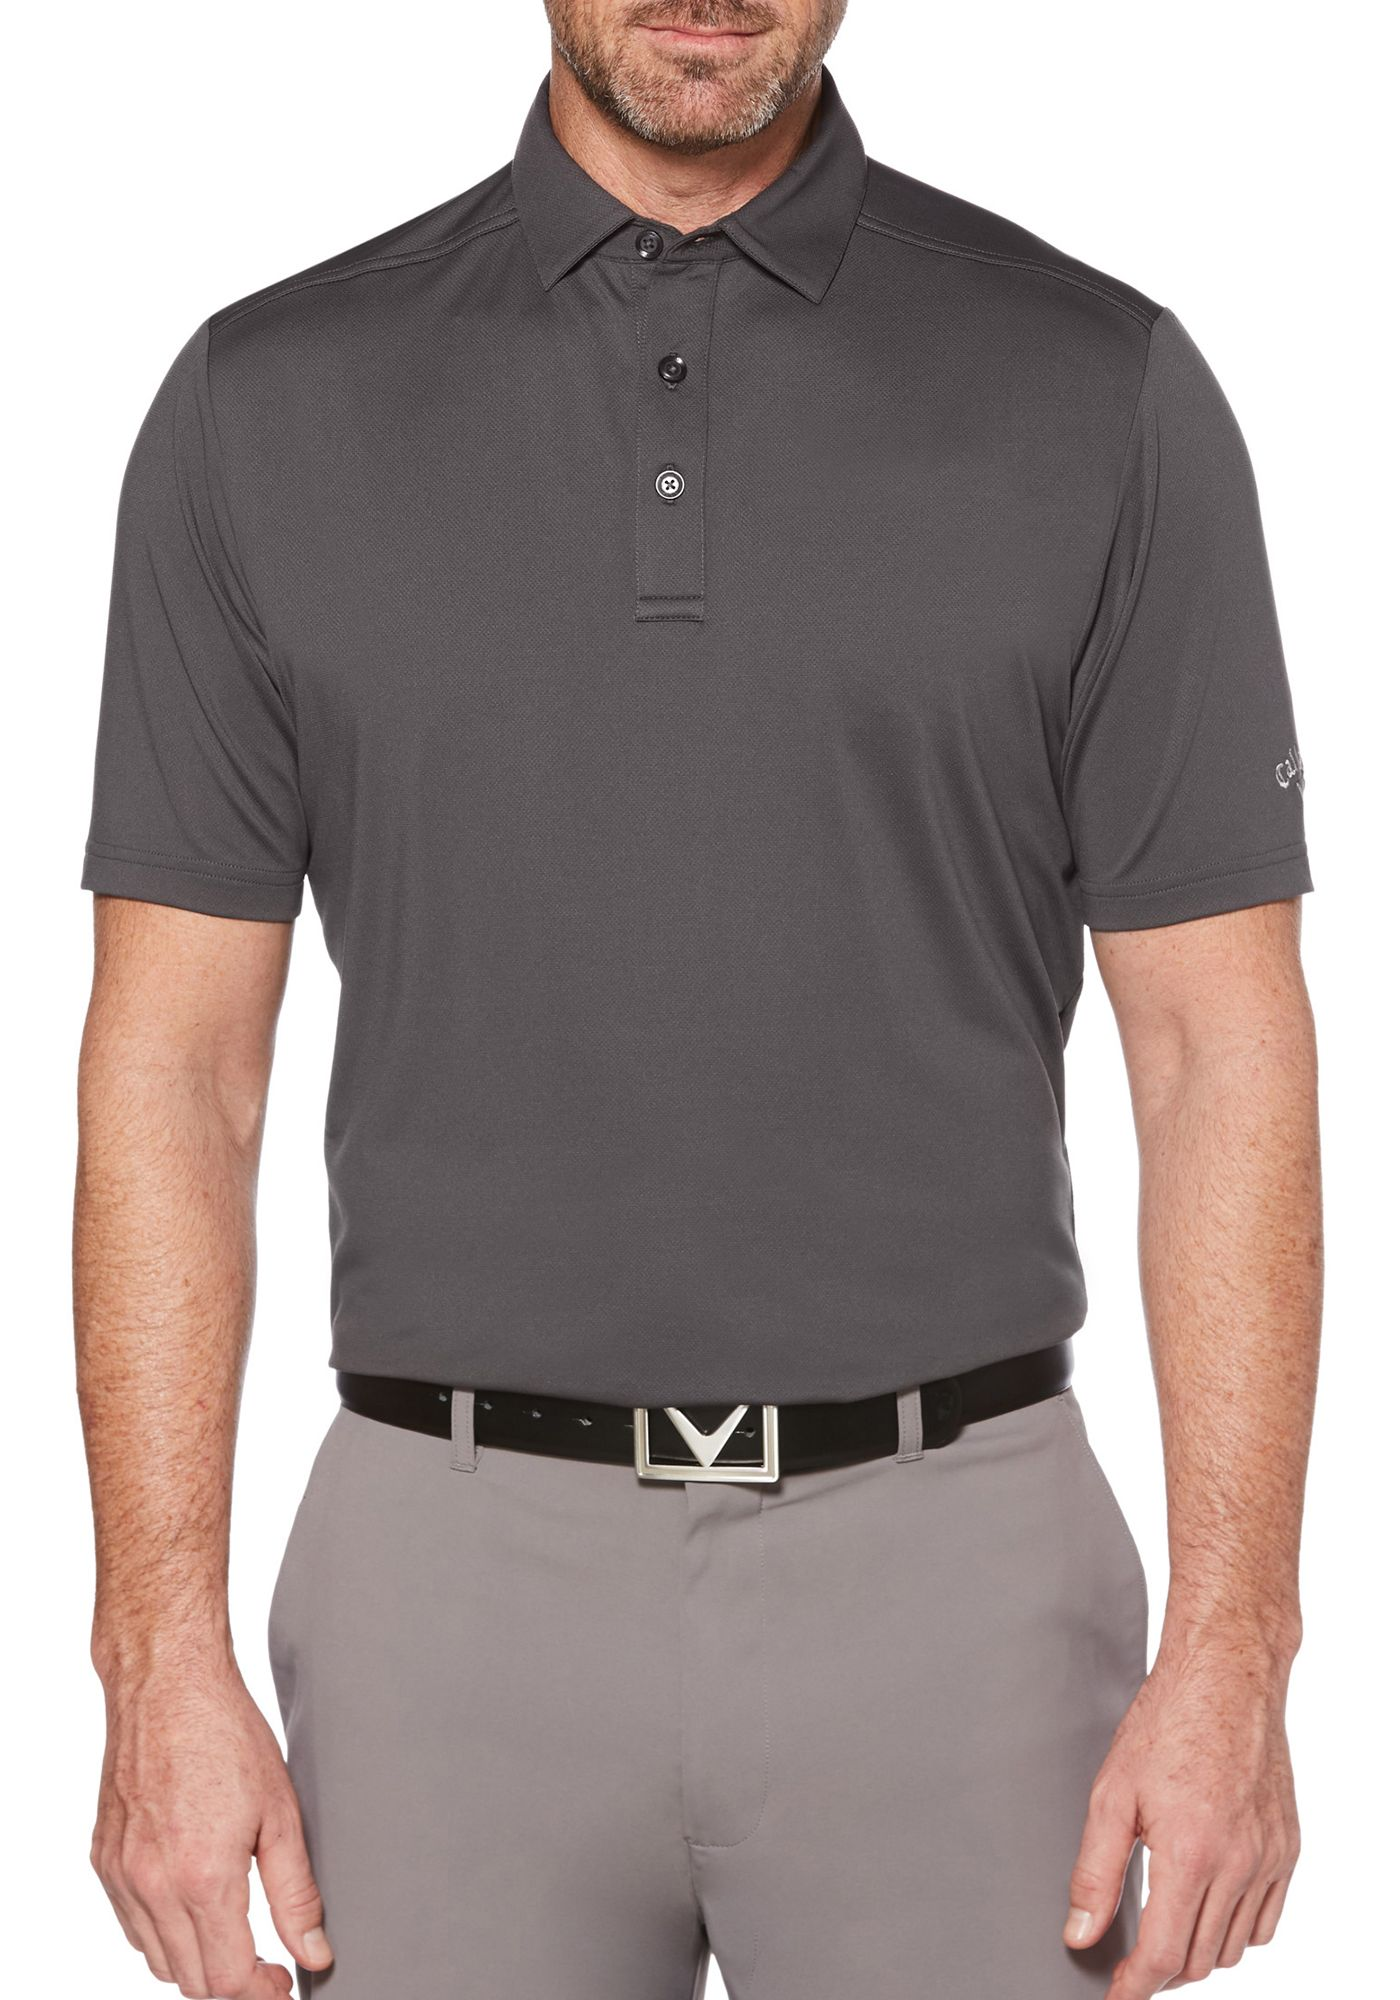 Callaway Men's Cooling Micro Hex Golf Polo